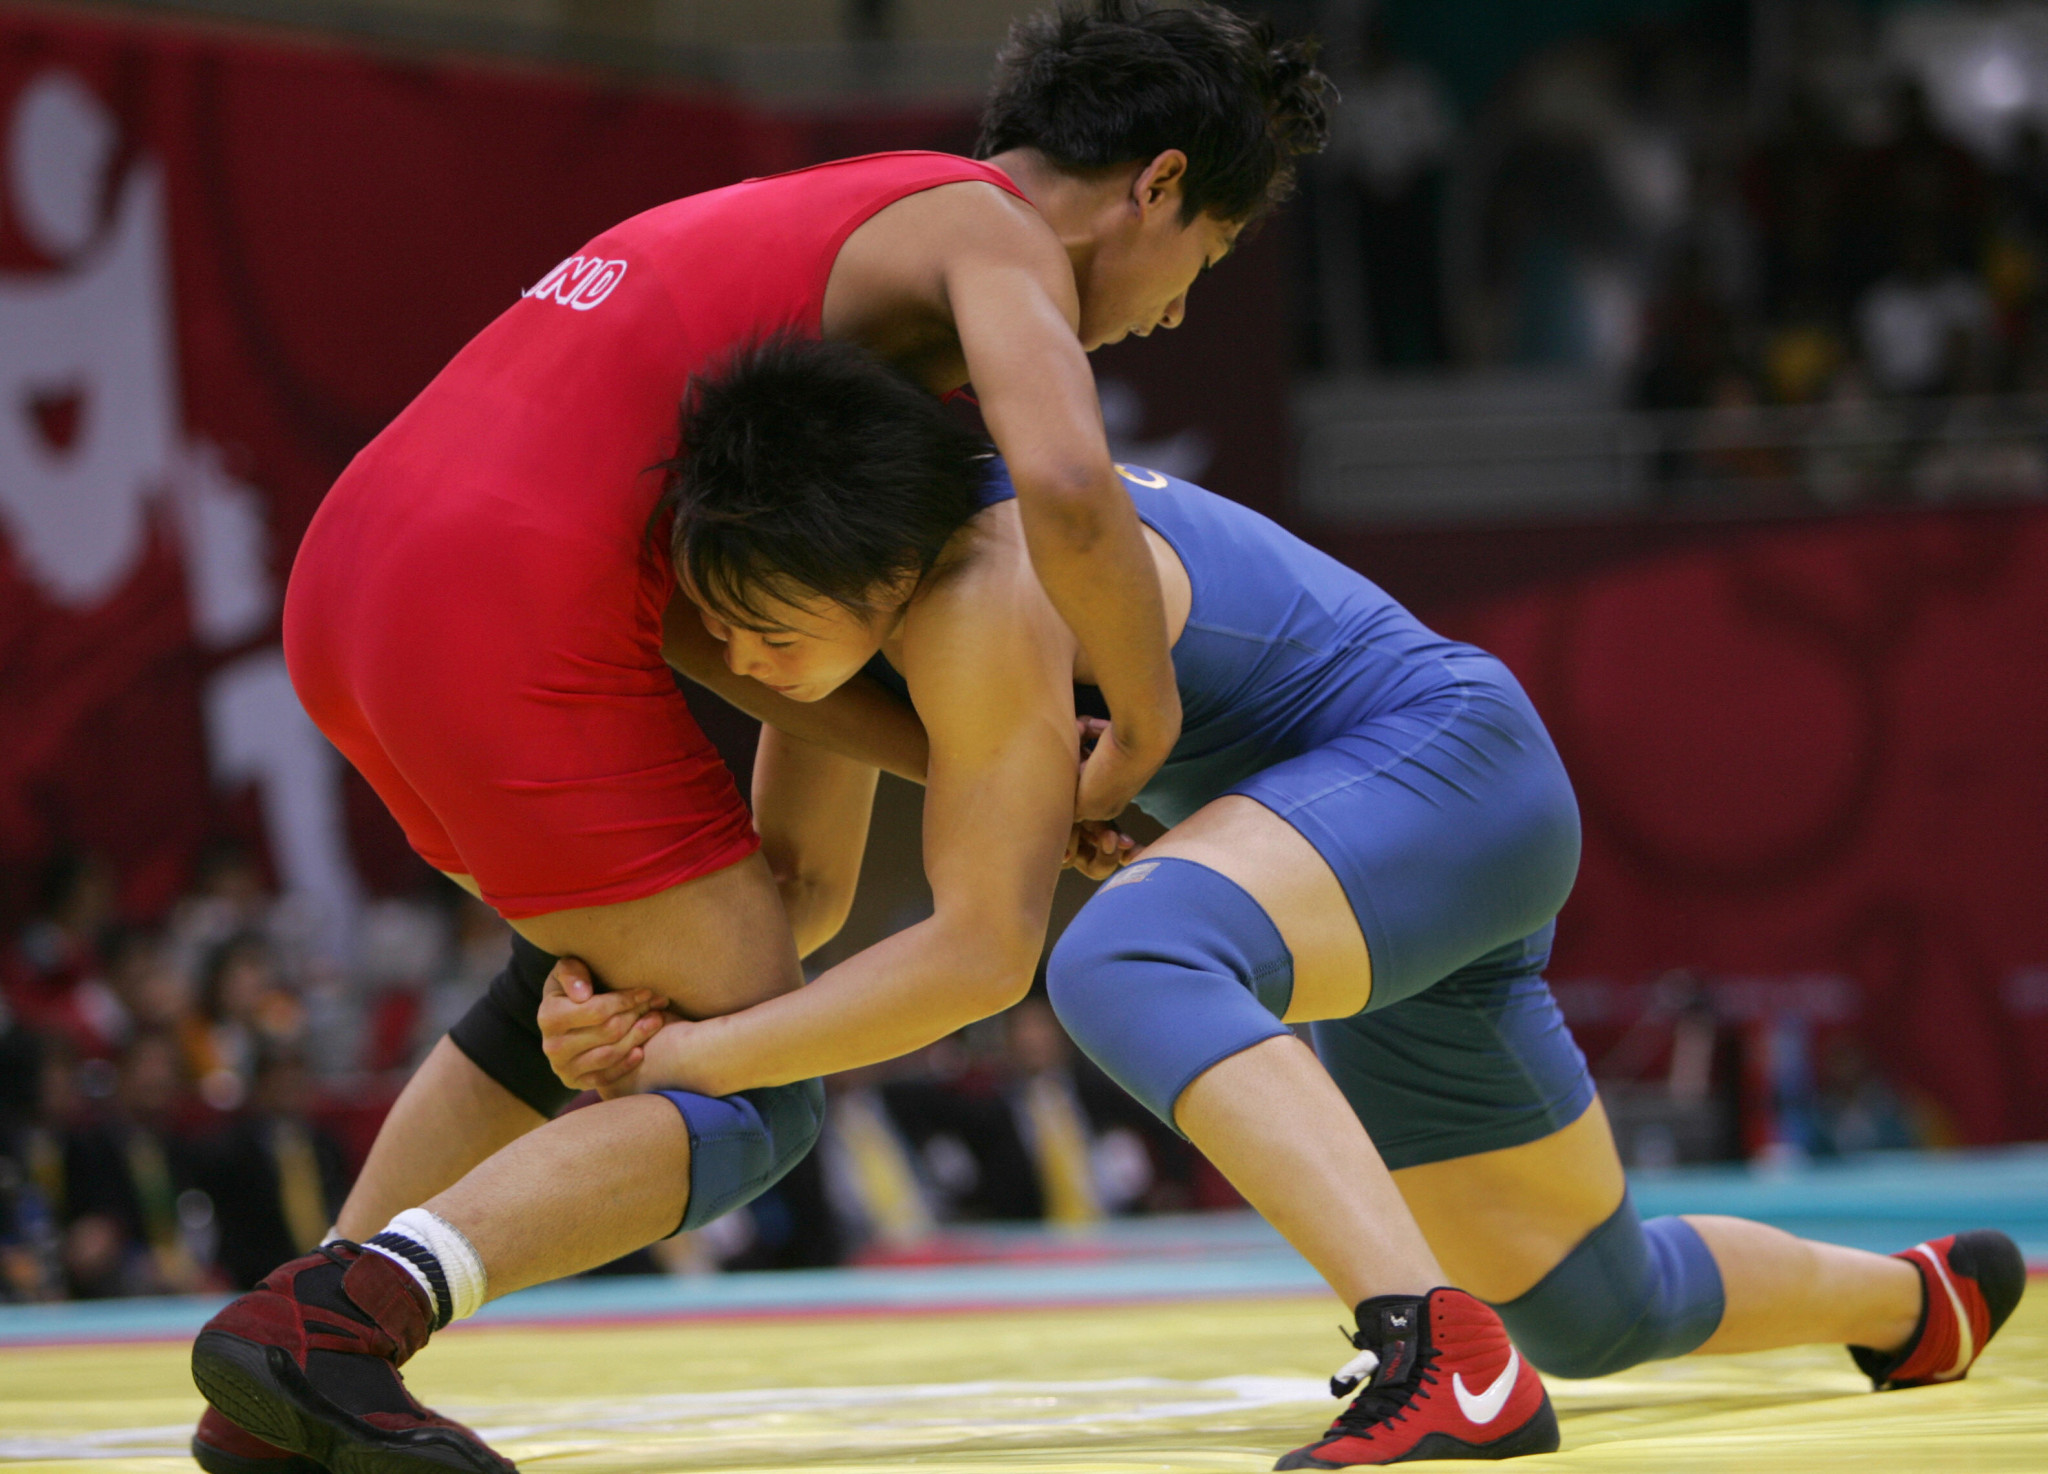 Chinese athletes will be eligible to compete according to the WFI ©Getty Images